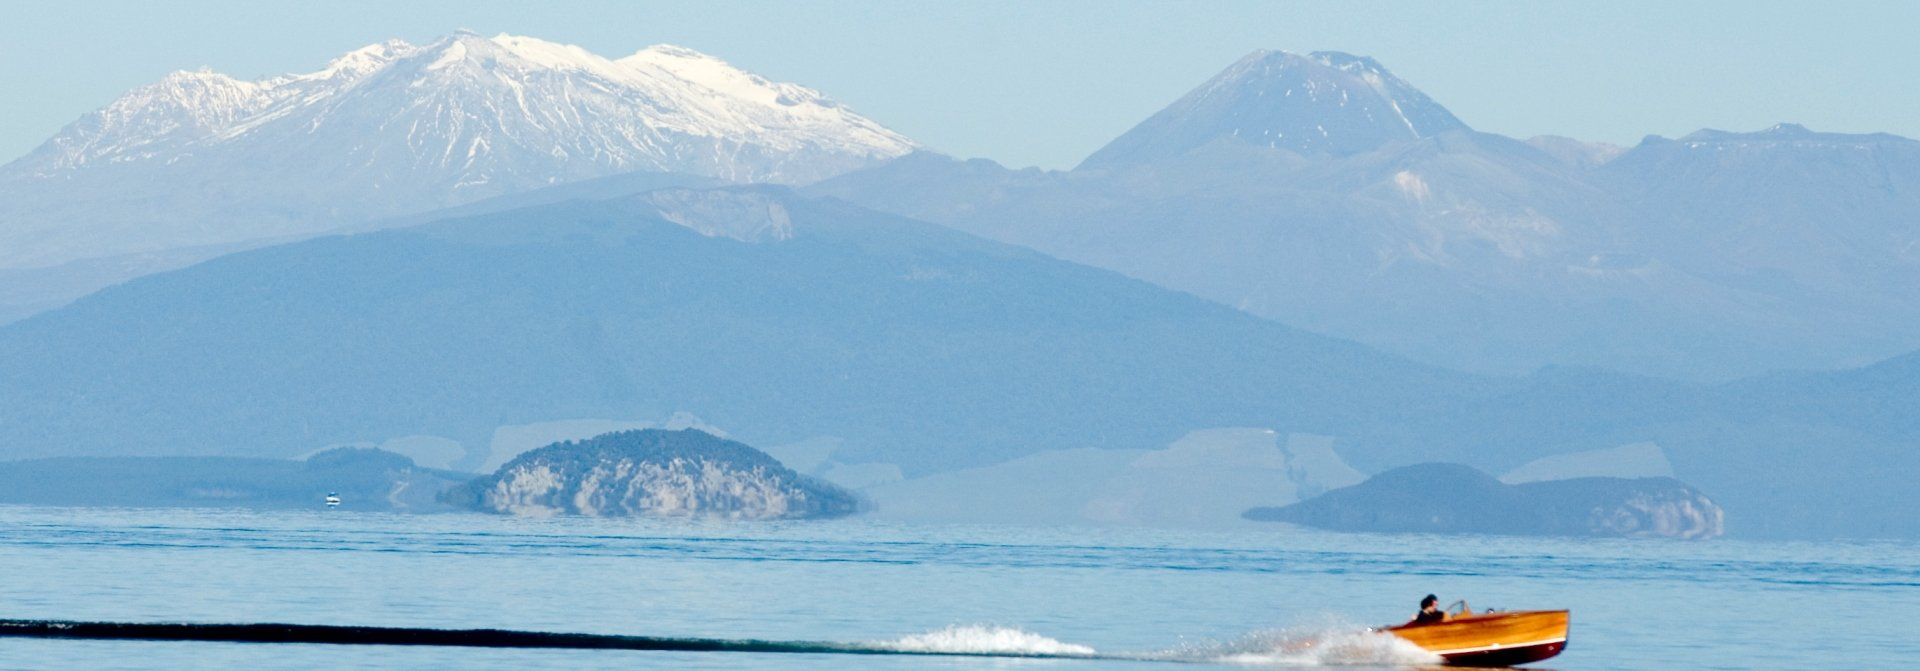 49. Summer boating on Lake Taupo.jpg